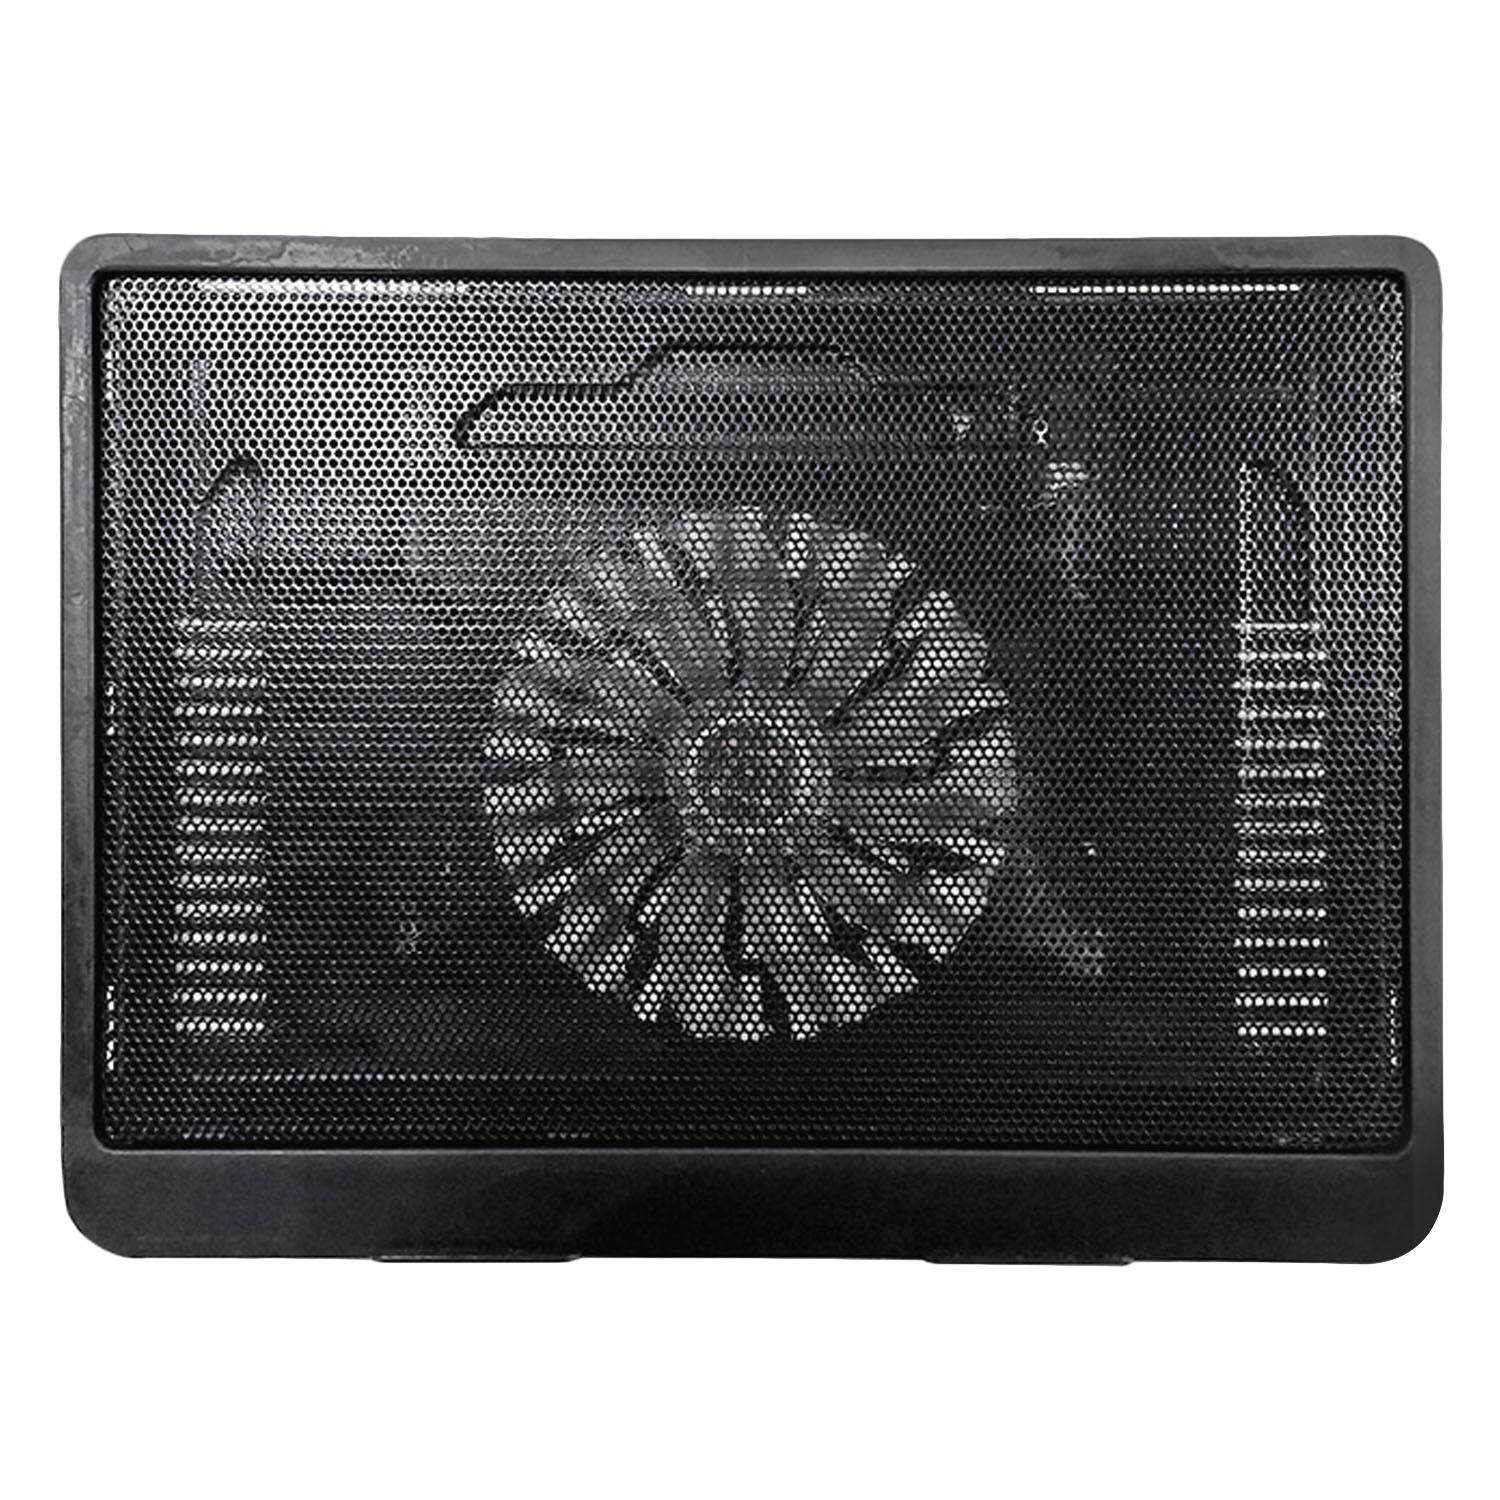 Portable USB Cooling Pad Ultra-Slim Quiet Laptop Notebook Cooling Base Stand Cooler with Oversized Fan 14 inch